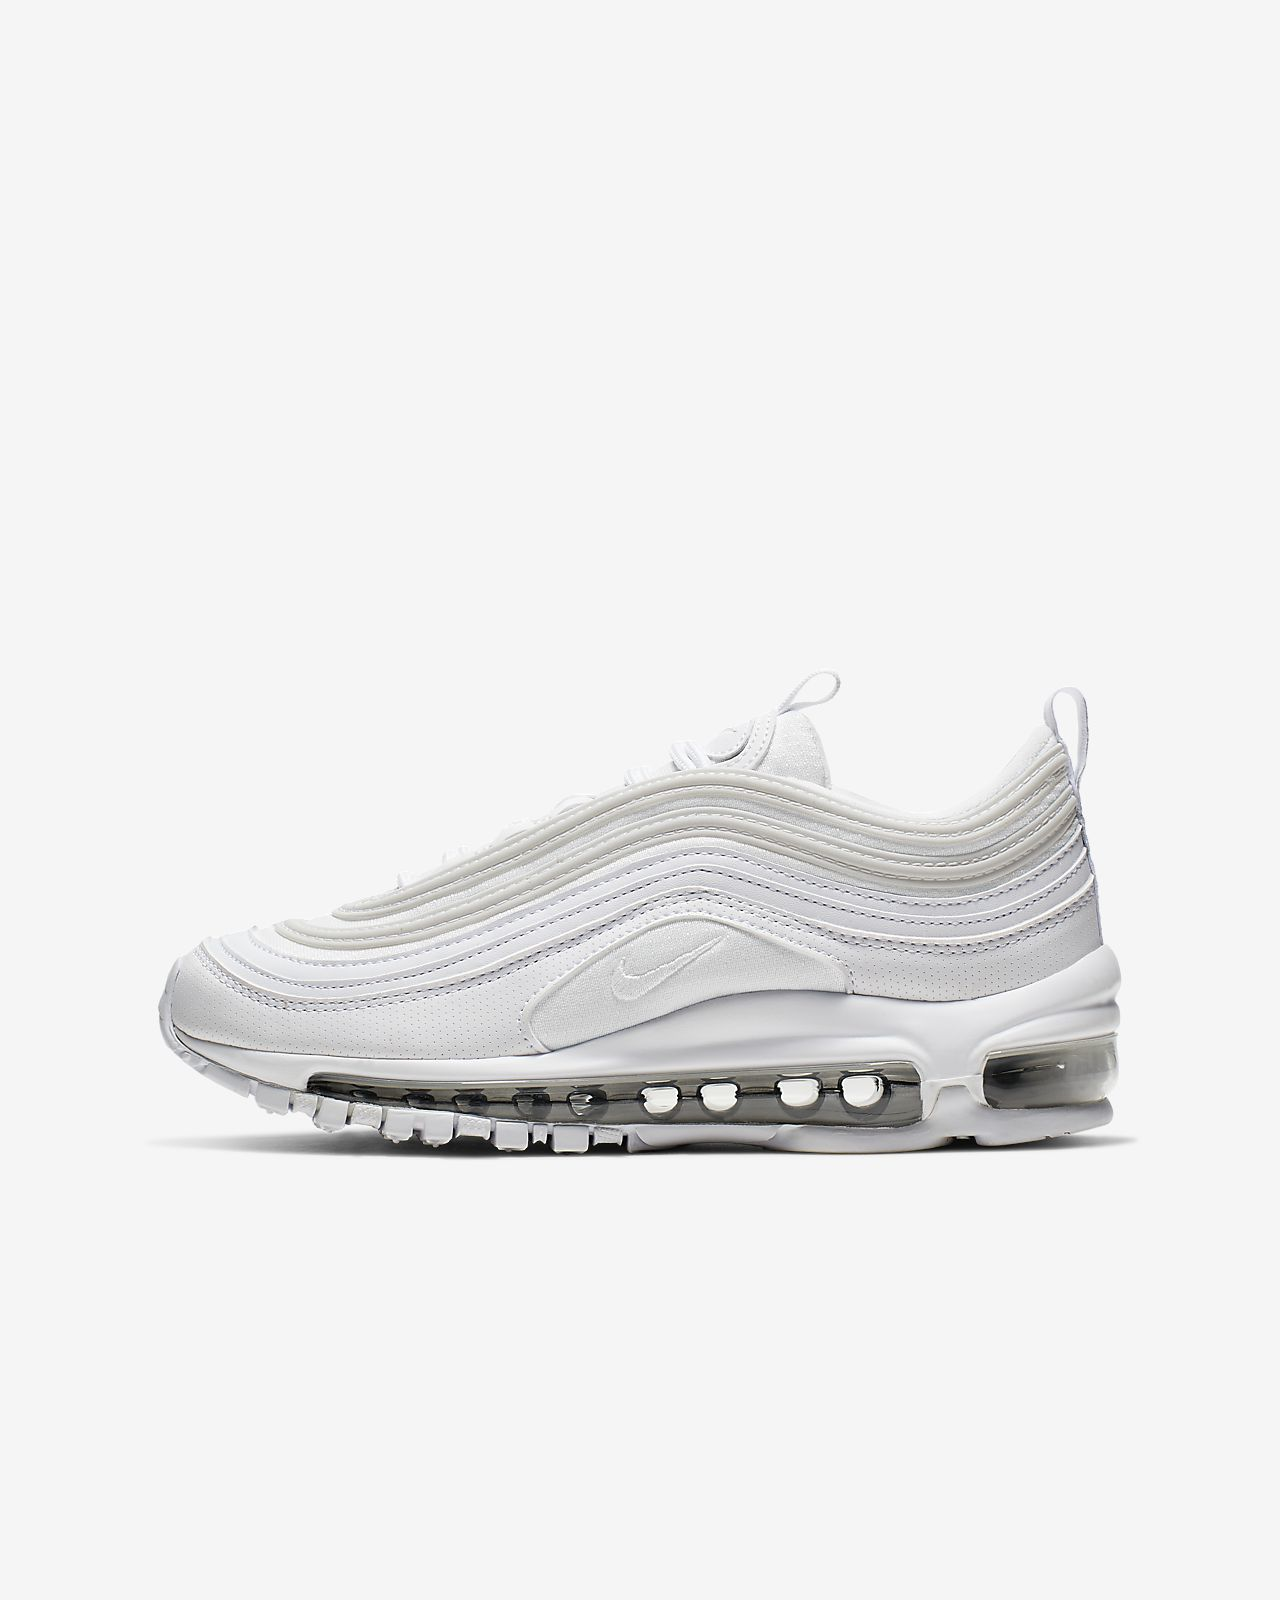 basquette air max